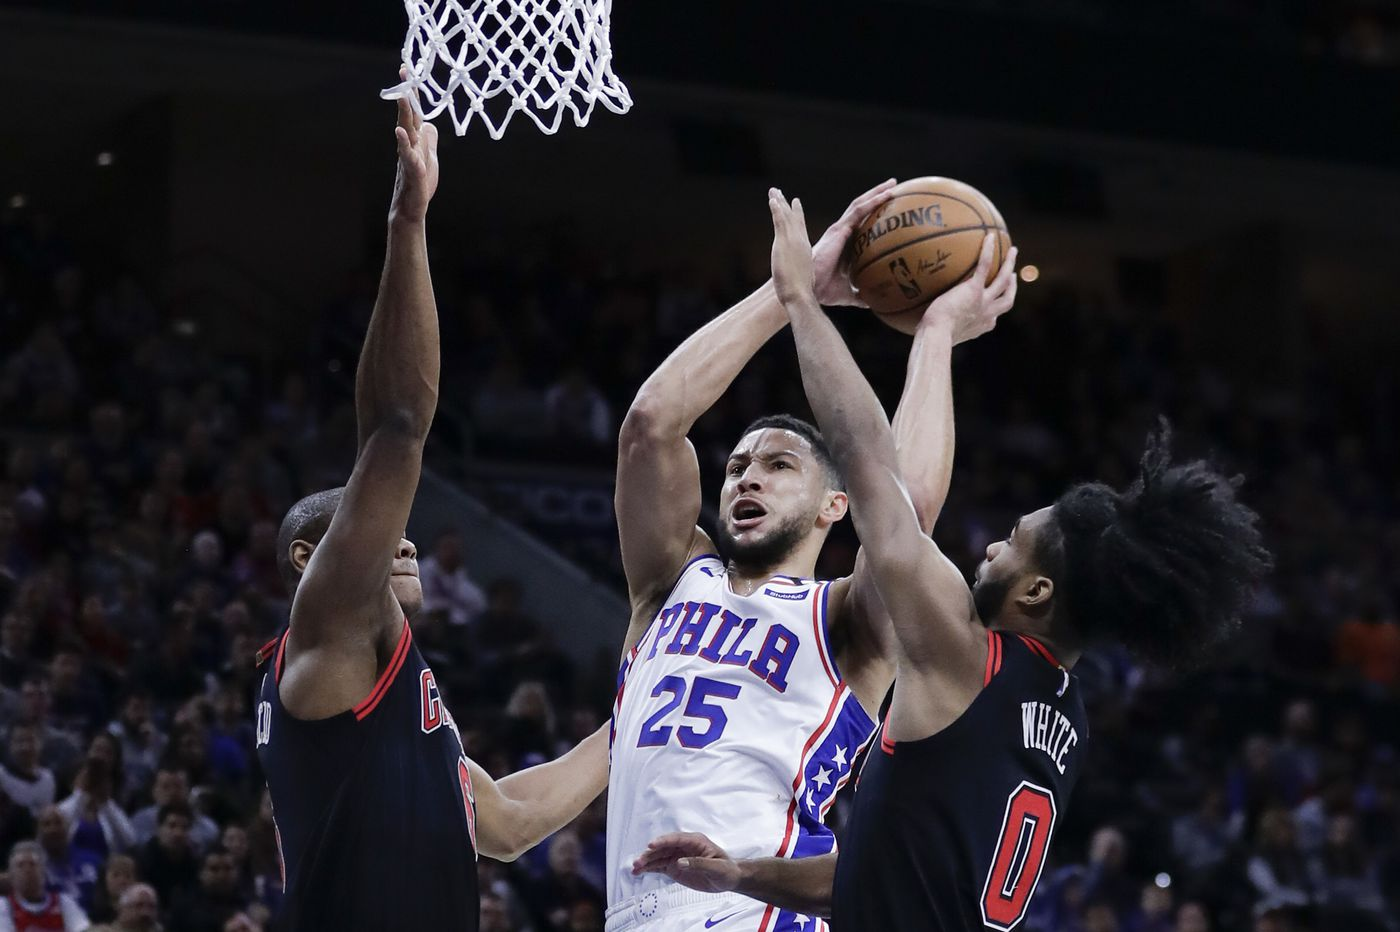 Sixers taking care of lower-level teams, but face an elite one Tuesday | Off the Dribble